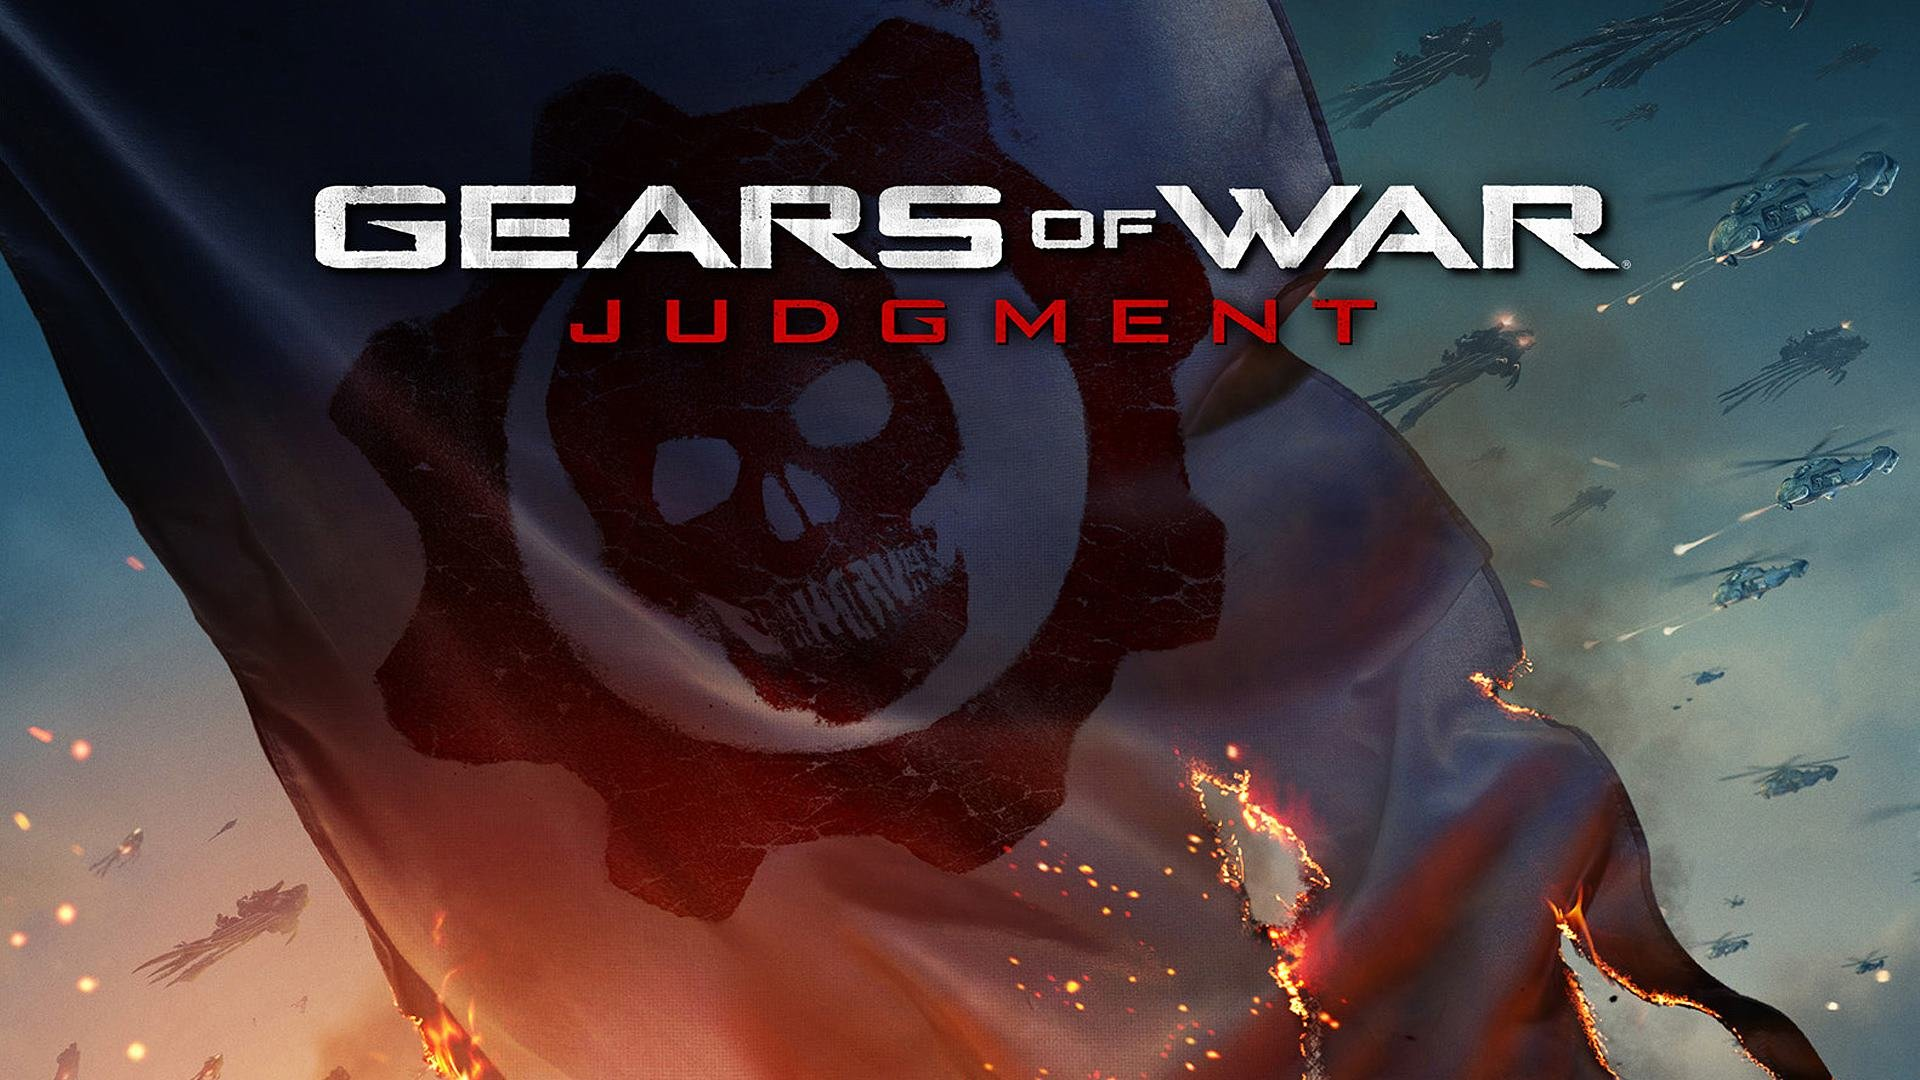 Awesome Gears Of War Judgment Free Wallpaper ID74068 For Full Hd 1080p Desktop